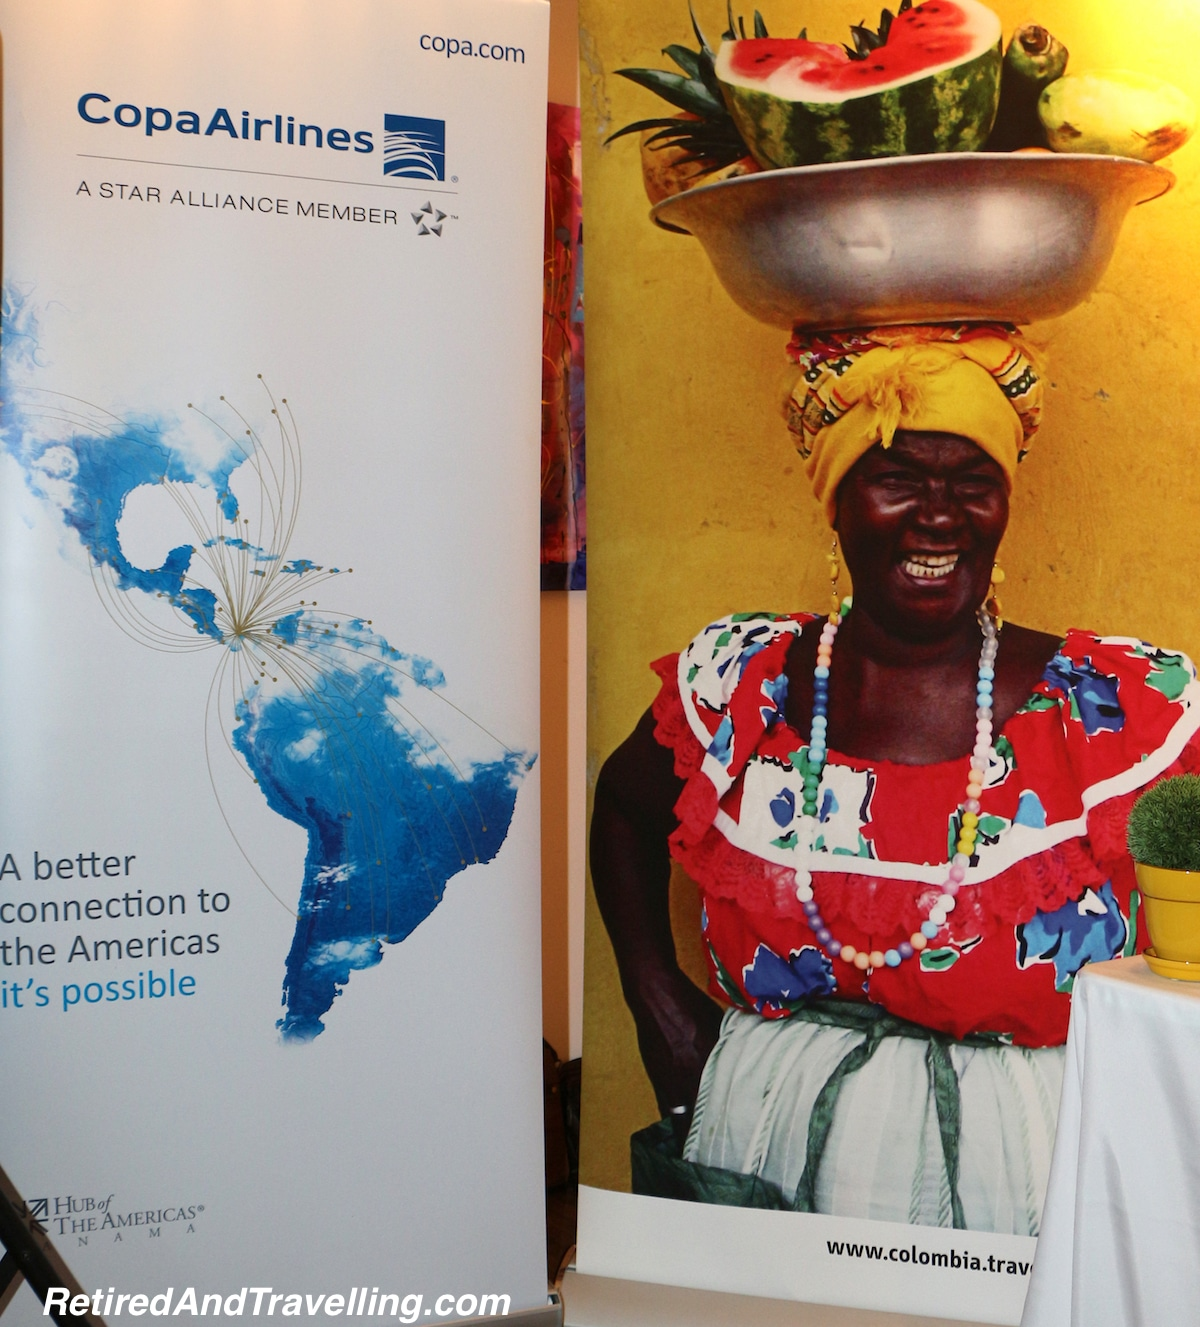 Copa Airlines - Travel Massive Celebrates with Columbia.jpg